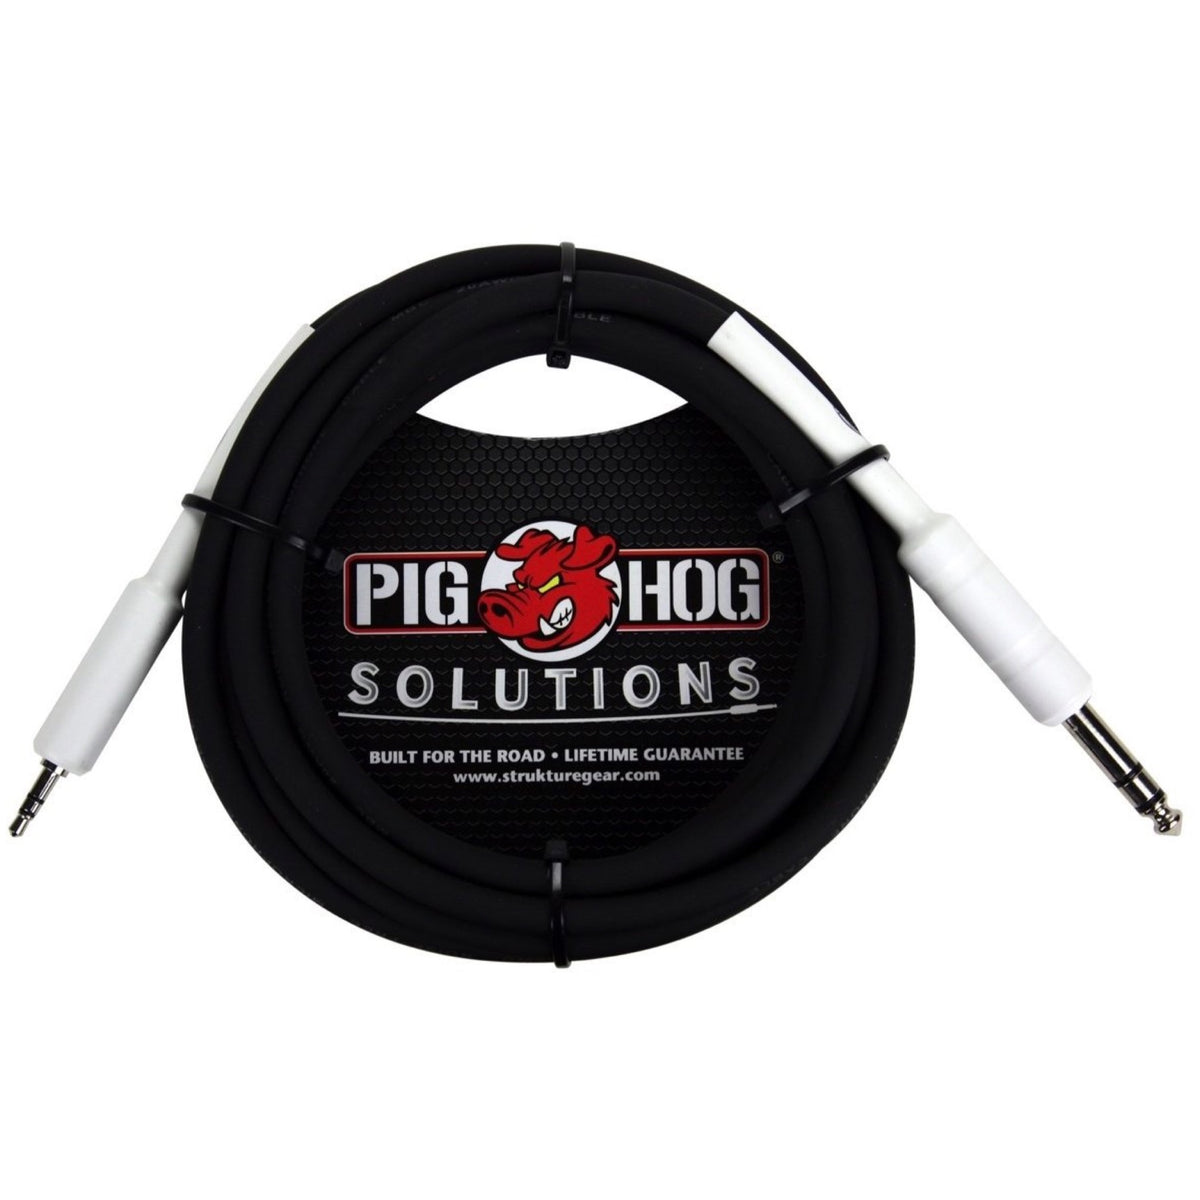 Pig Hog PX48J6 1/4 Inch TRS (Male) to 3.5mm (Male) Adaptor Cable, 6 Foot